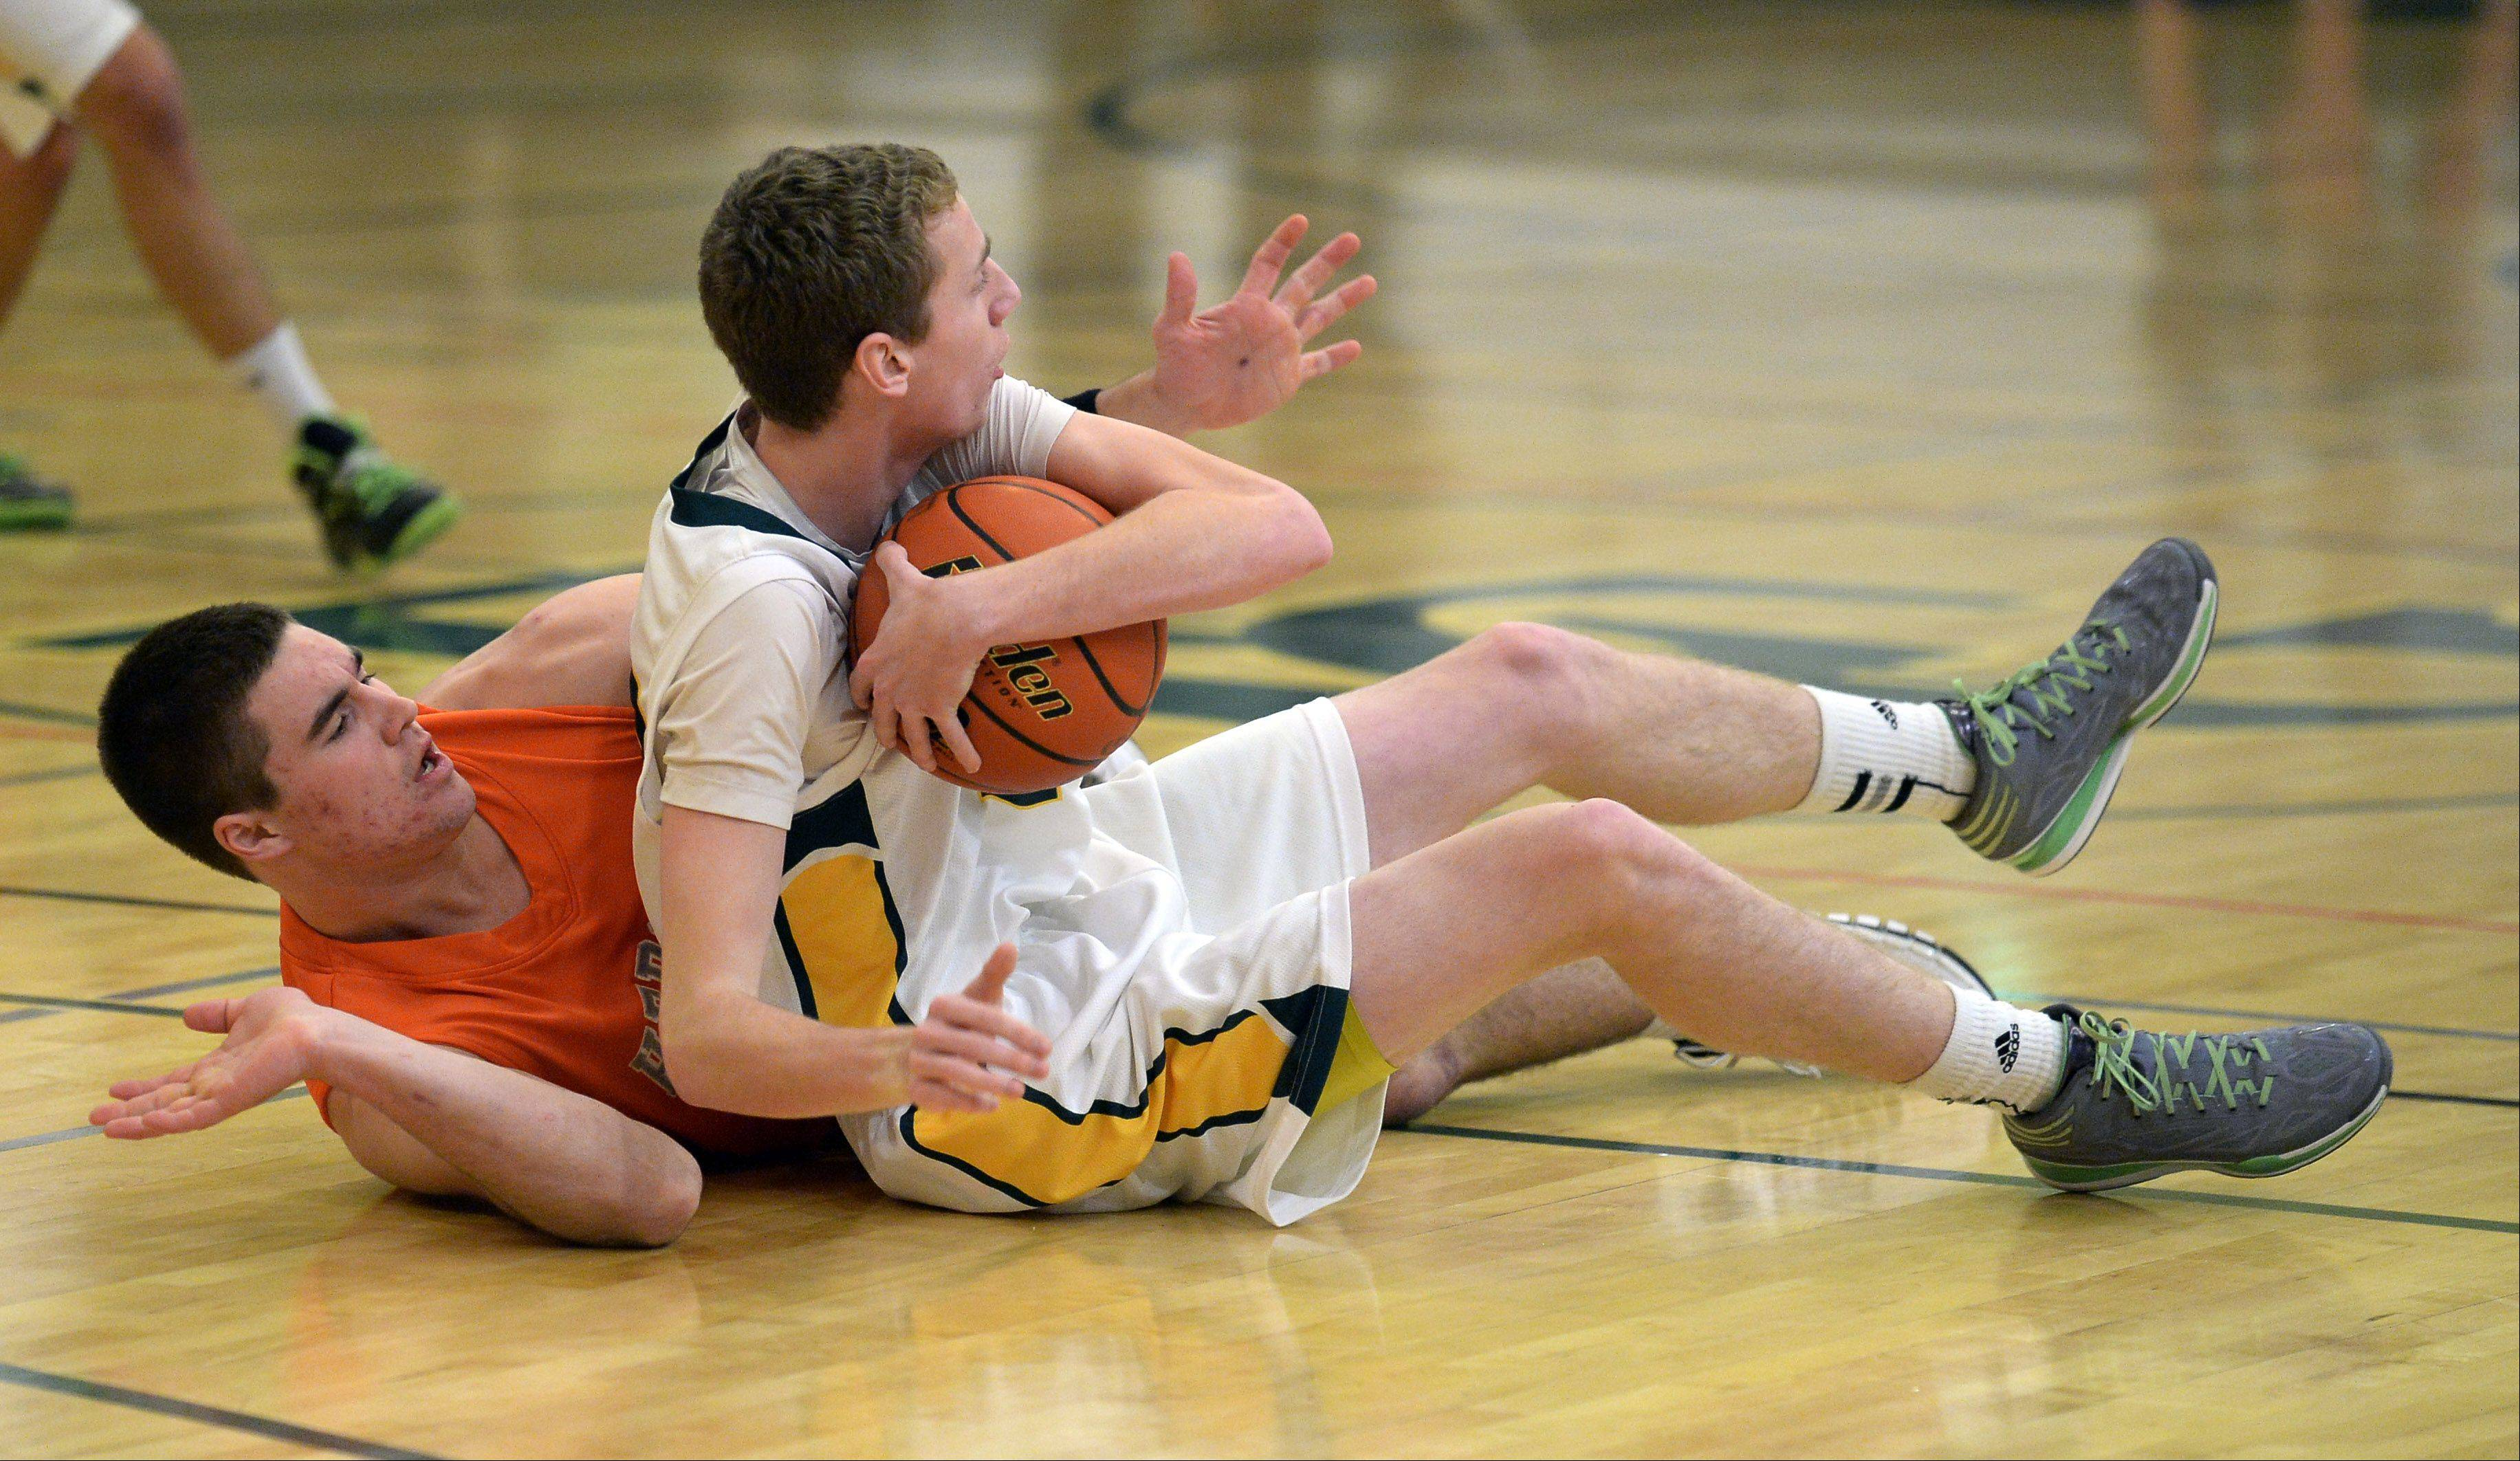 Elk Grove's Dan Hadler and Hersey's Grant Burke mix it up on the floor in the first quarter as they vie for control of the ball Thursday in Elk Grove.